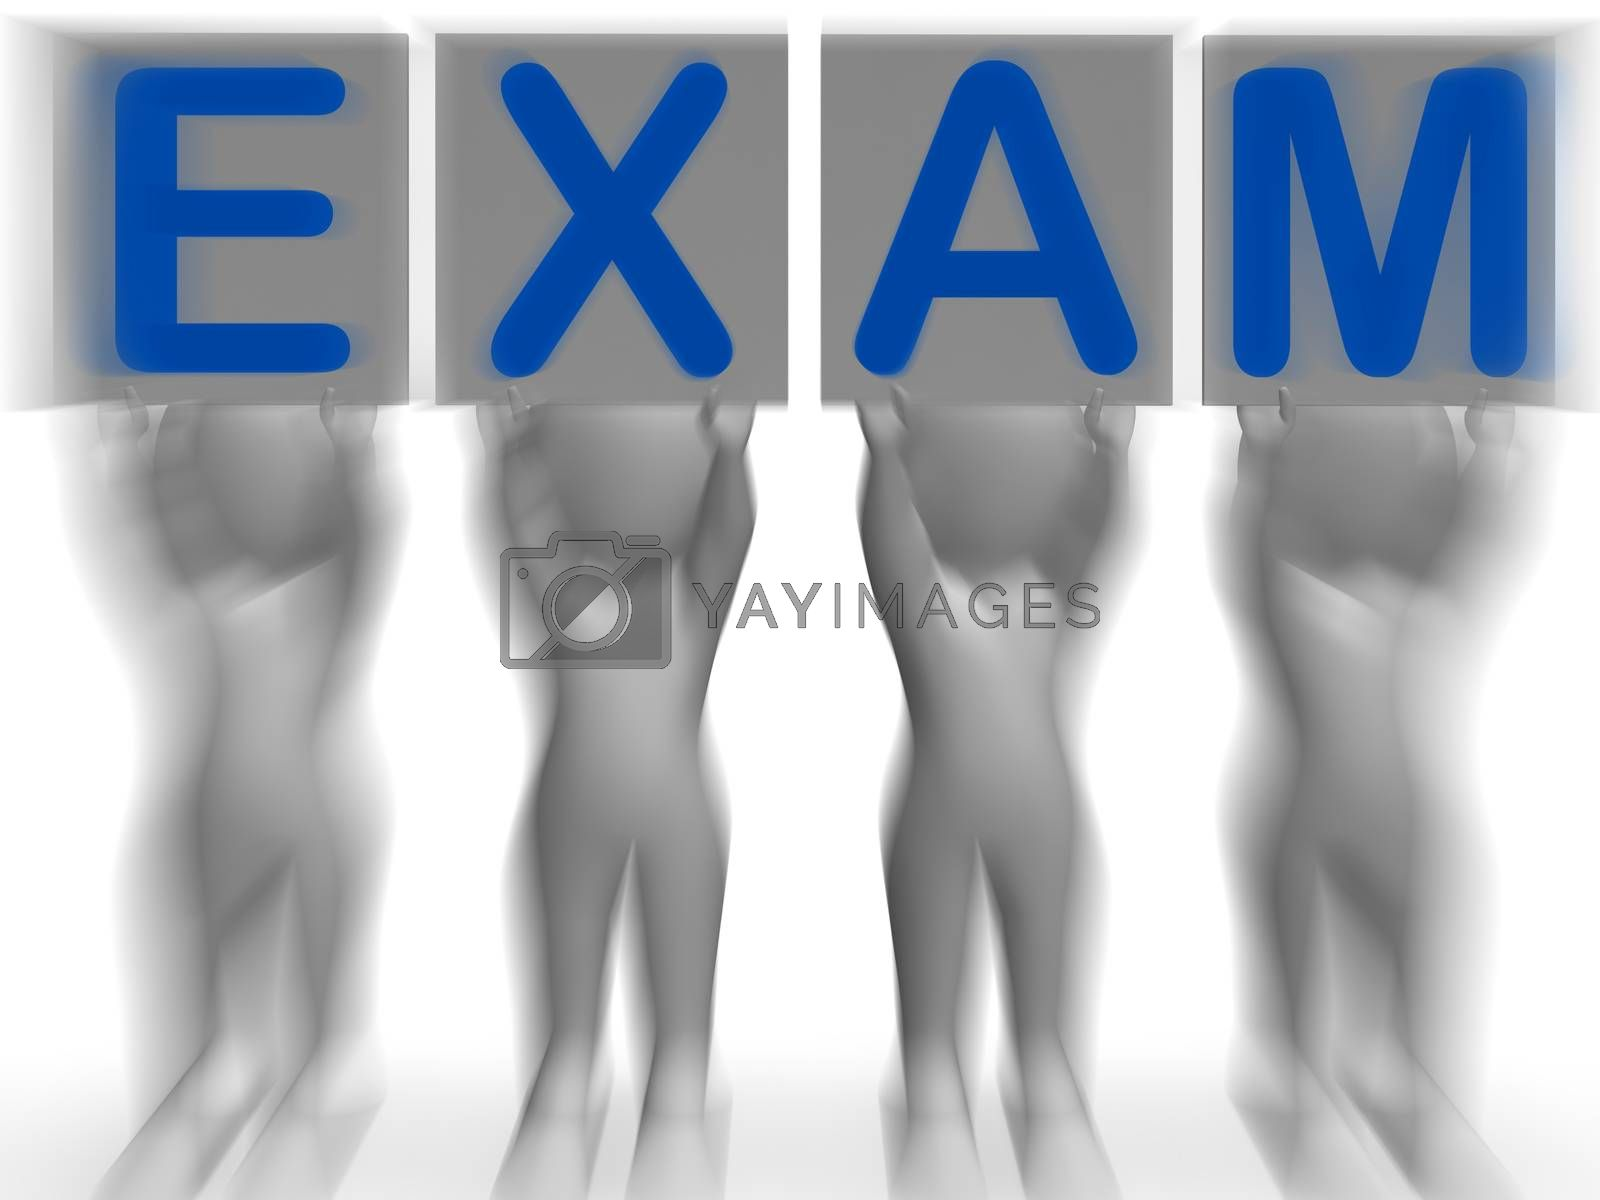 Exam Placards Means Extreme Questionnaire Or Examination by stuartmiles